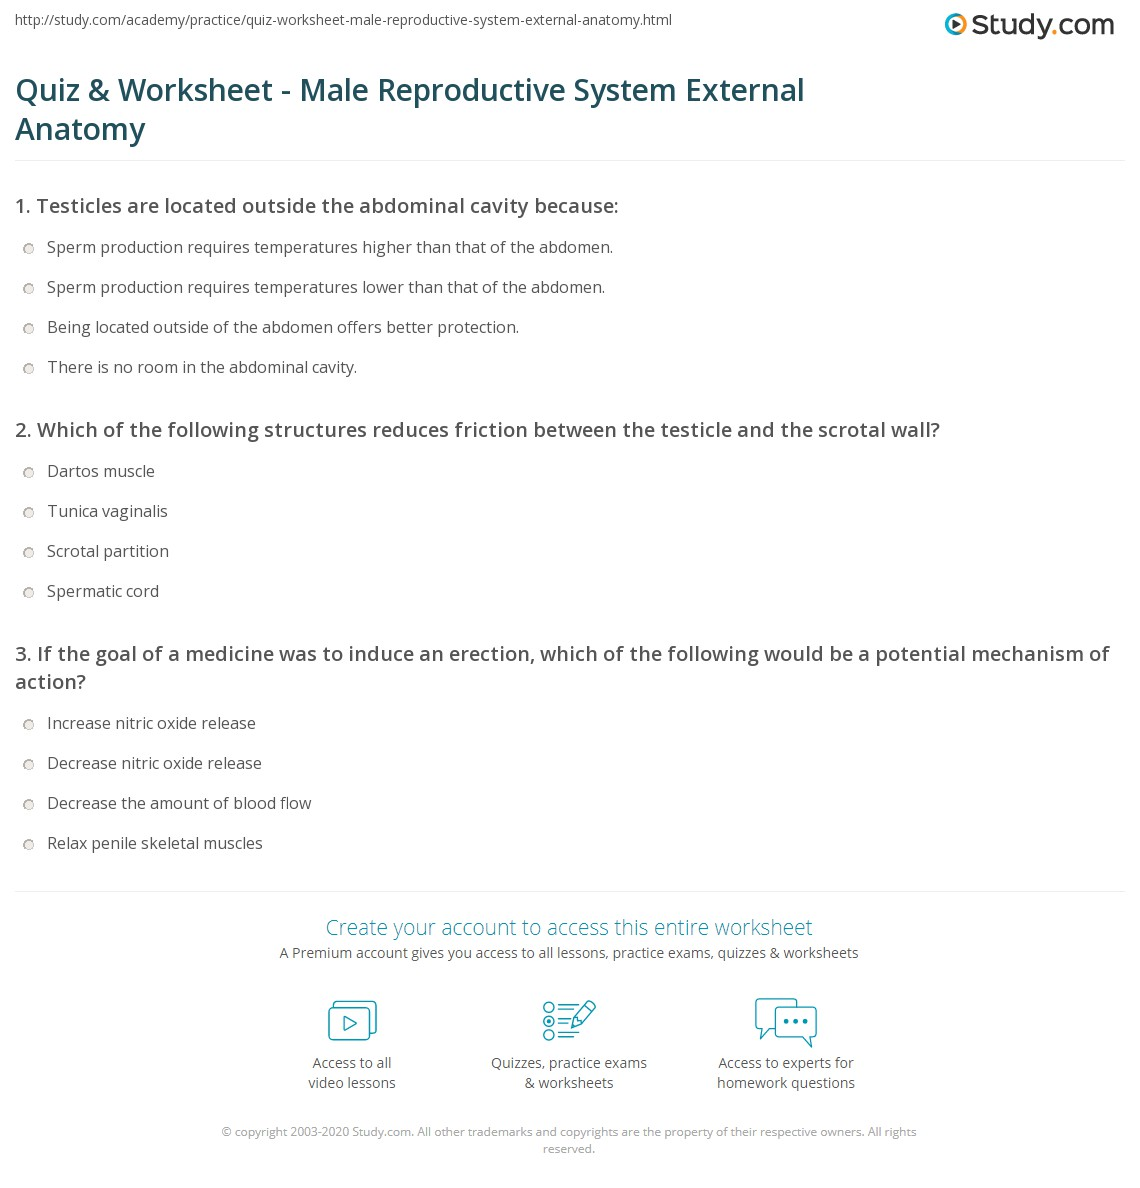 Quiz Worksheet Male Reproductive System External Anatomy Study